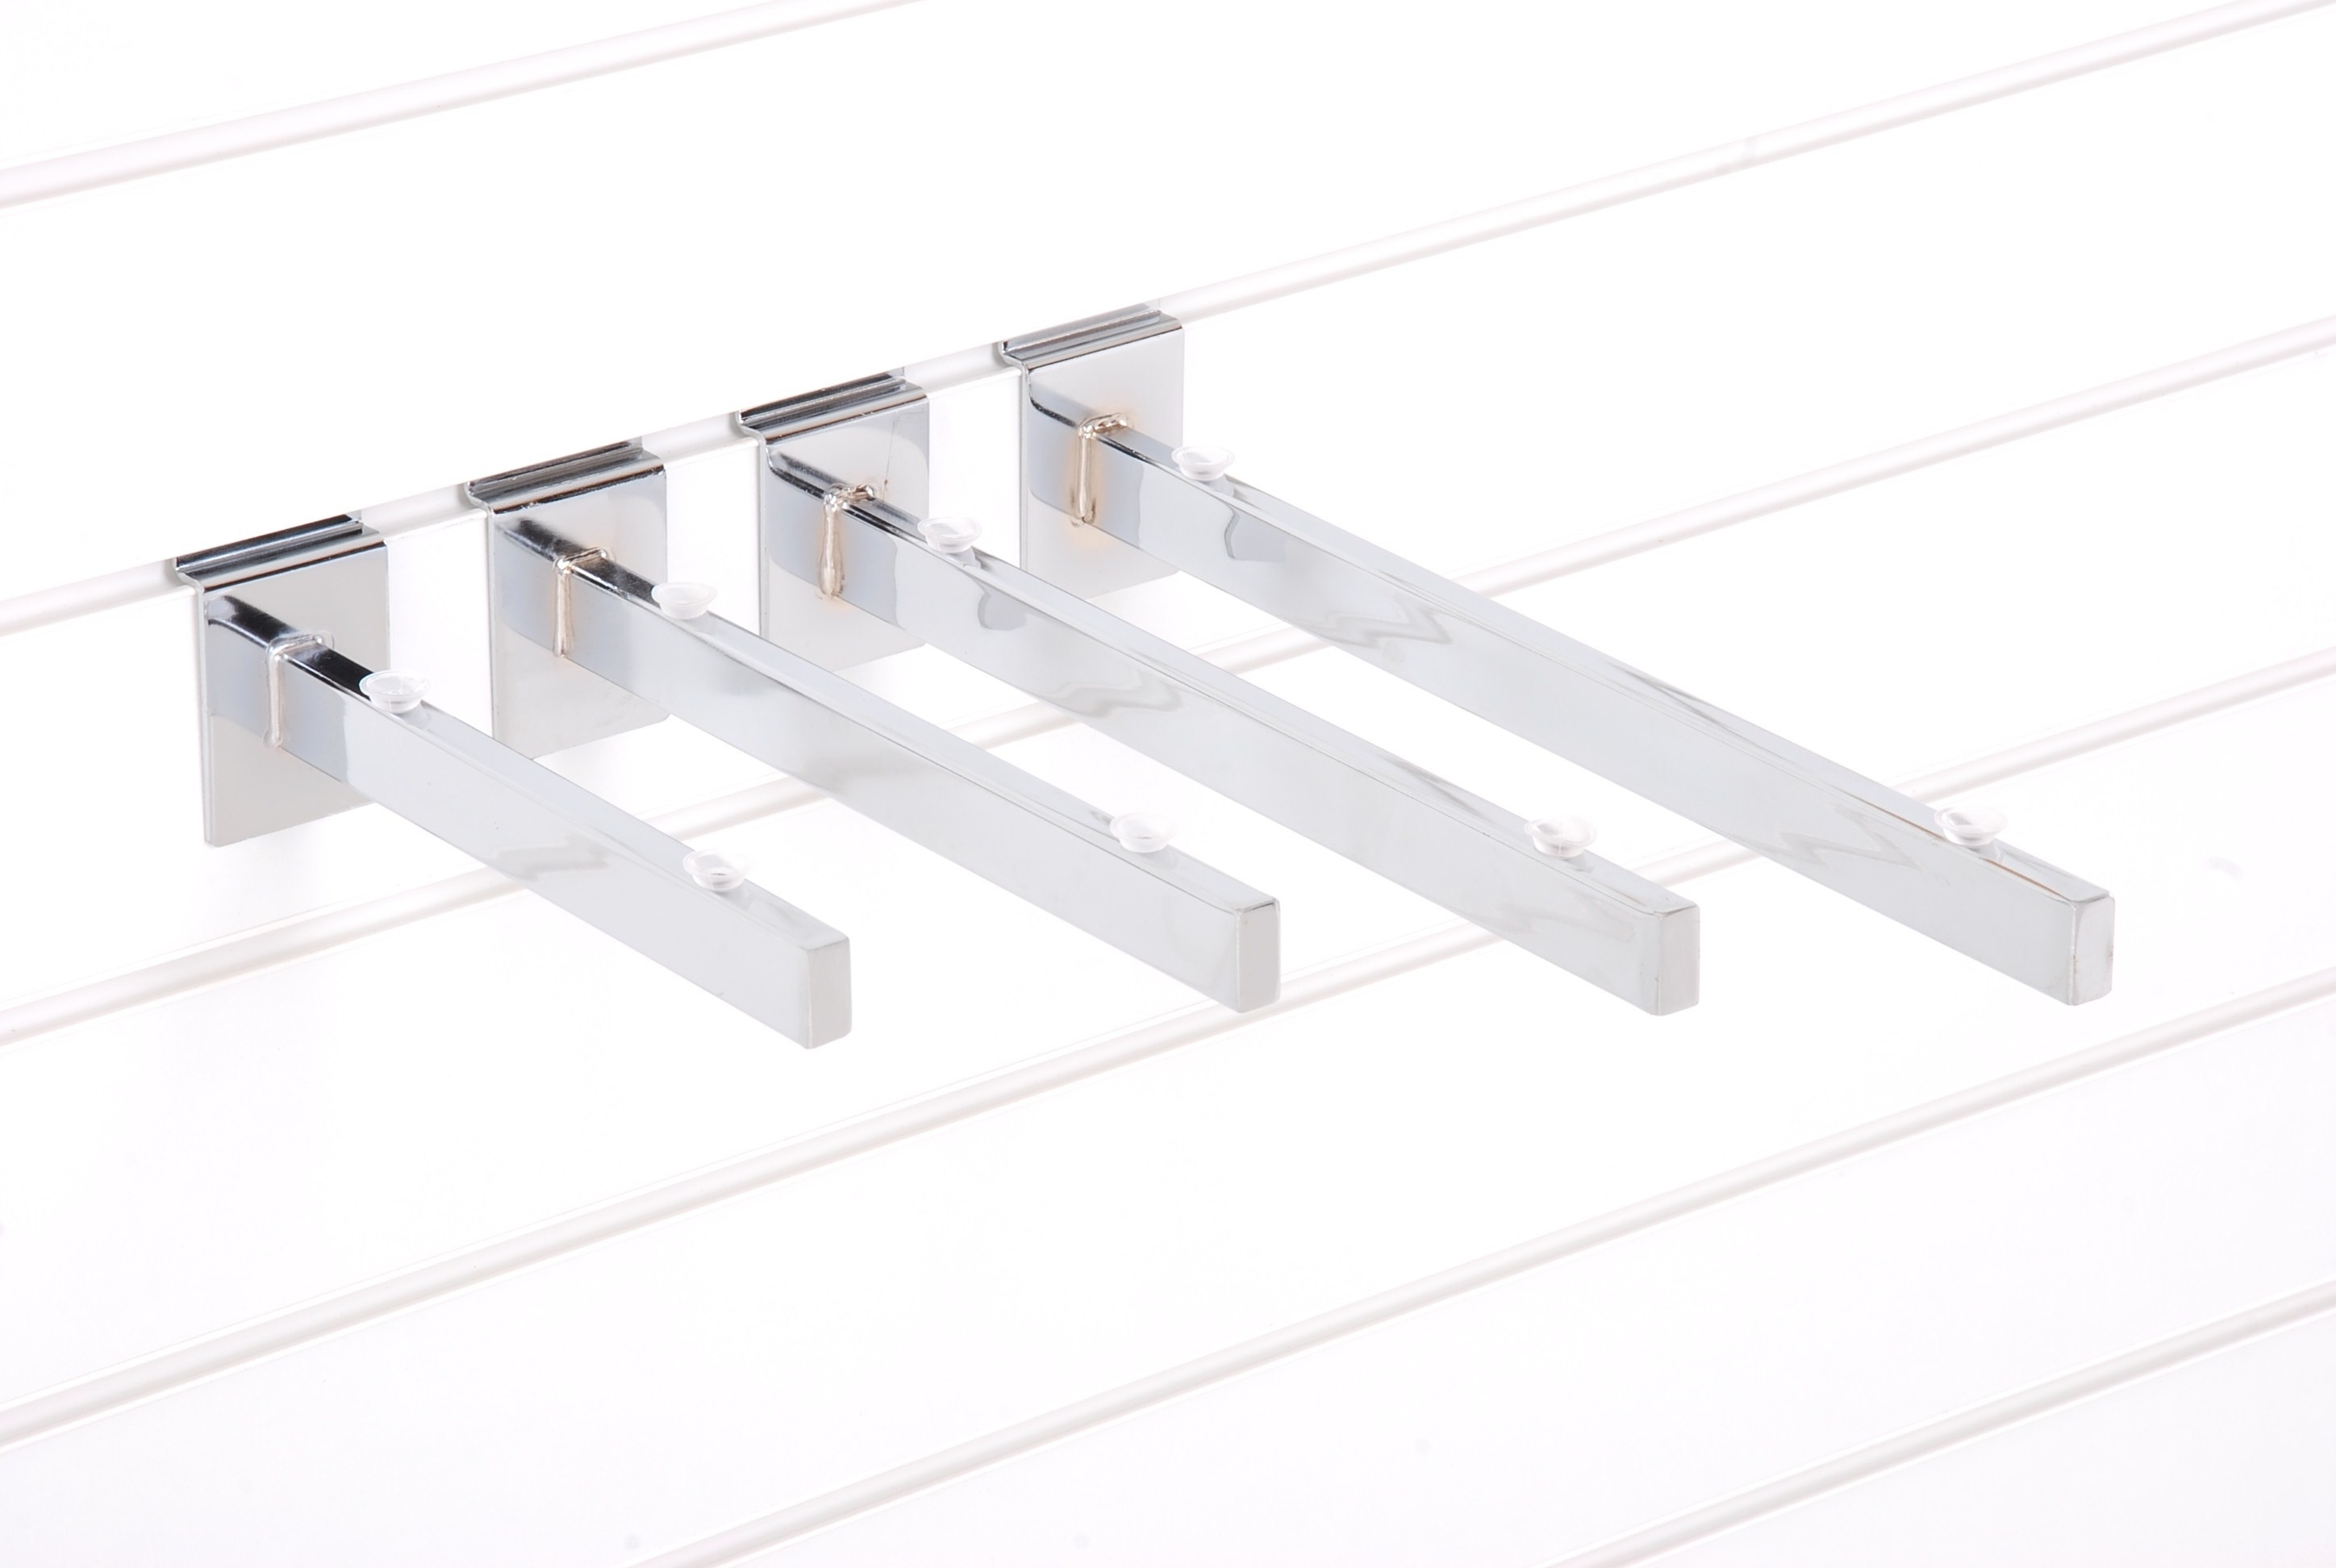 Tips Ideas Interesting Floating Shelves Material Design With Inside Glass Shelf Brackets Floating On Air (Image 12 of 15)